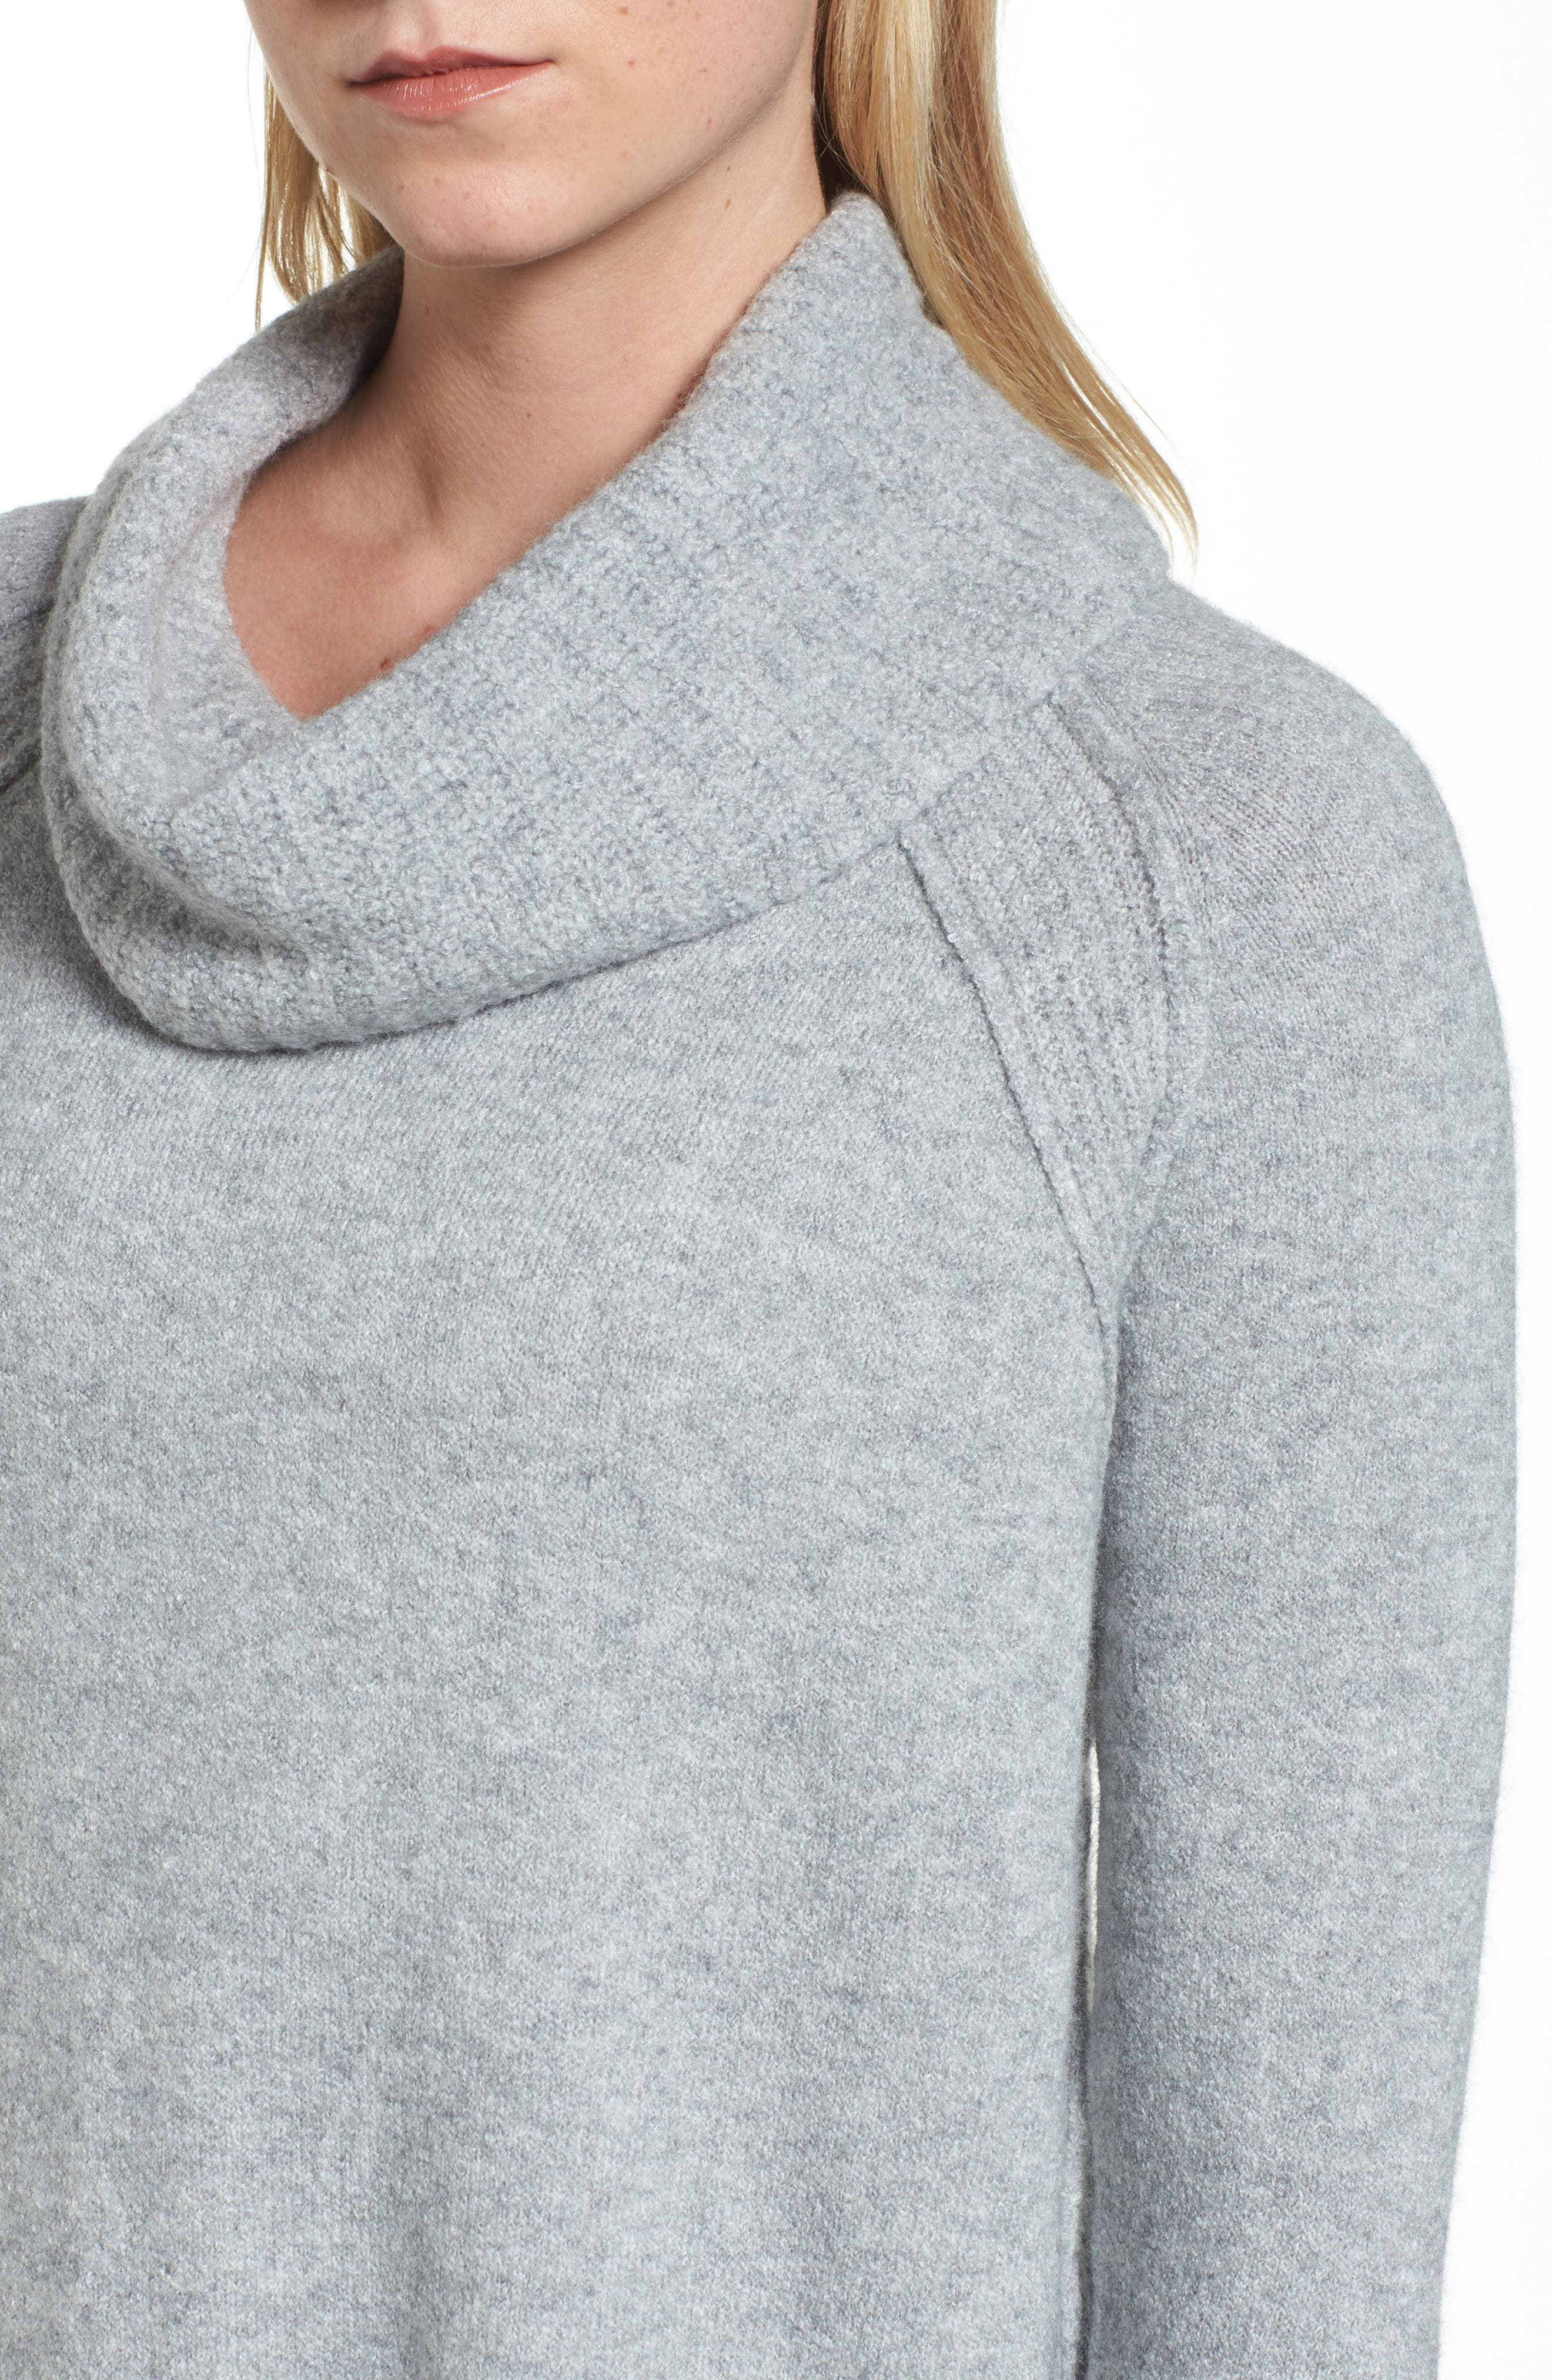 Cowl Neck Sweater,                             Alternate thumbnail 4, color,                             Grey Heather